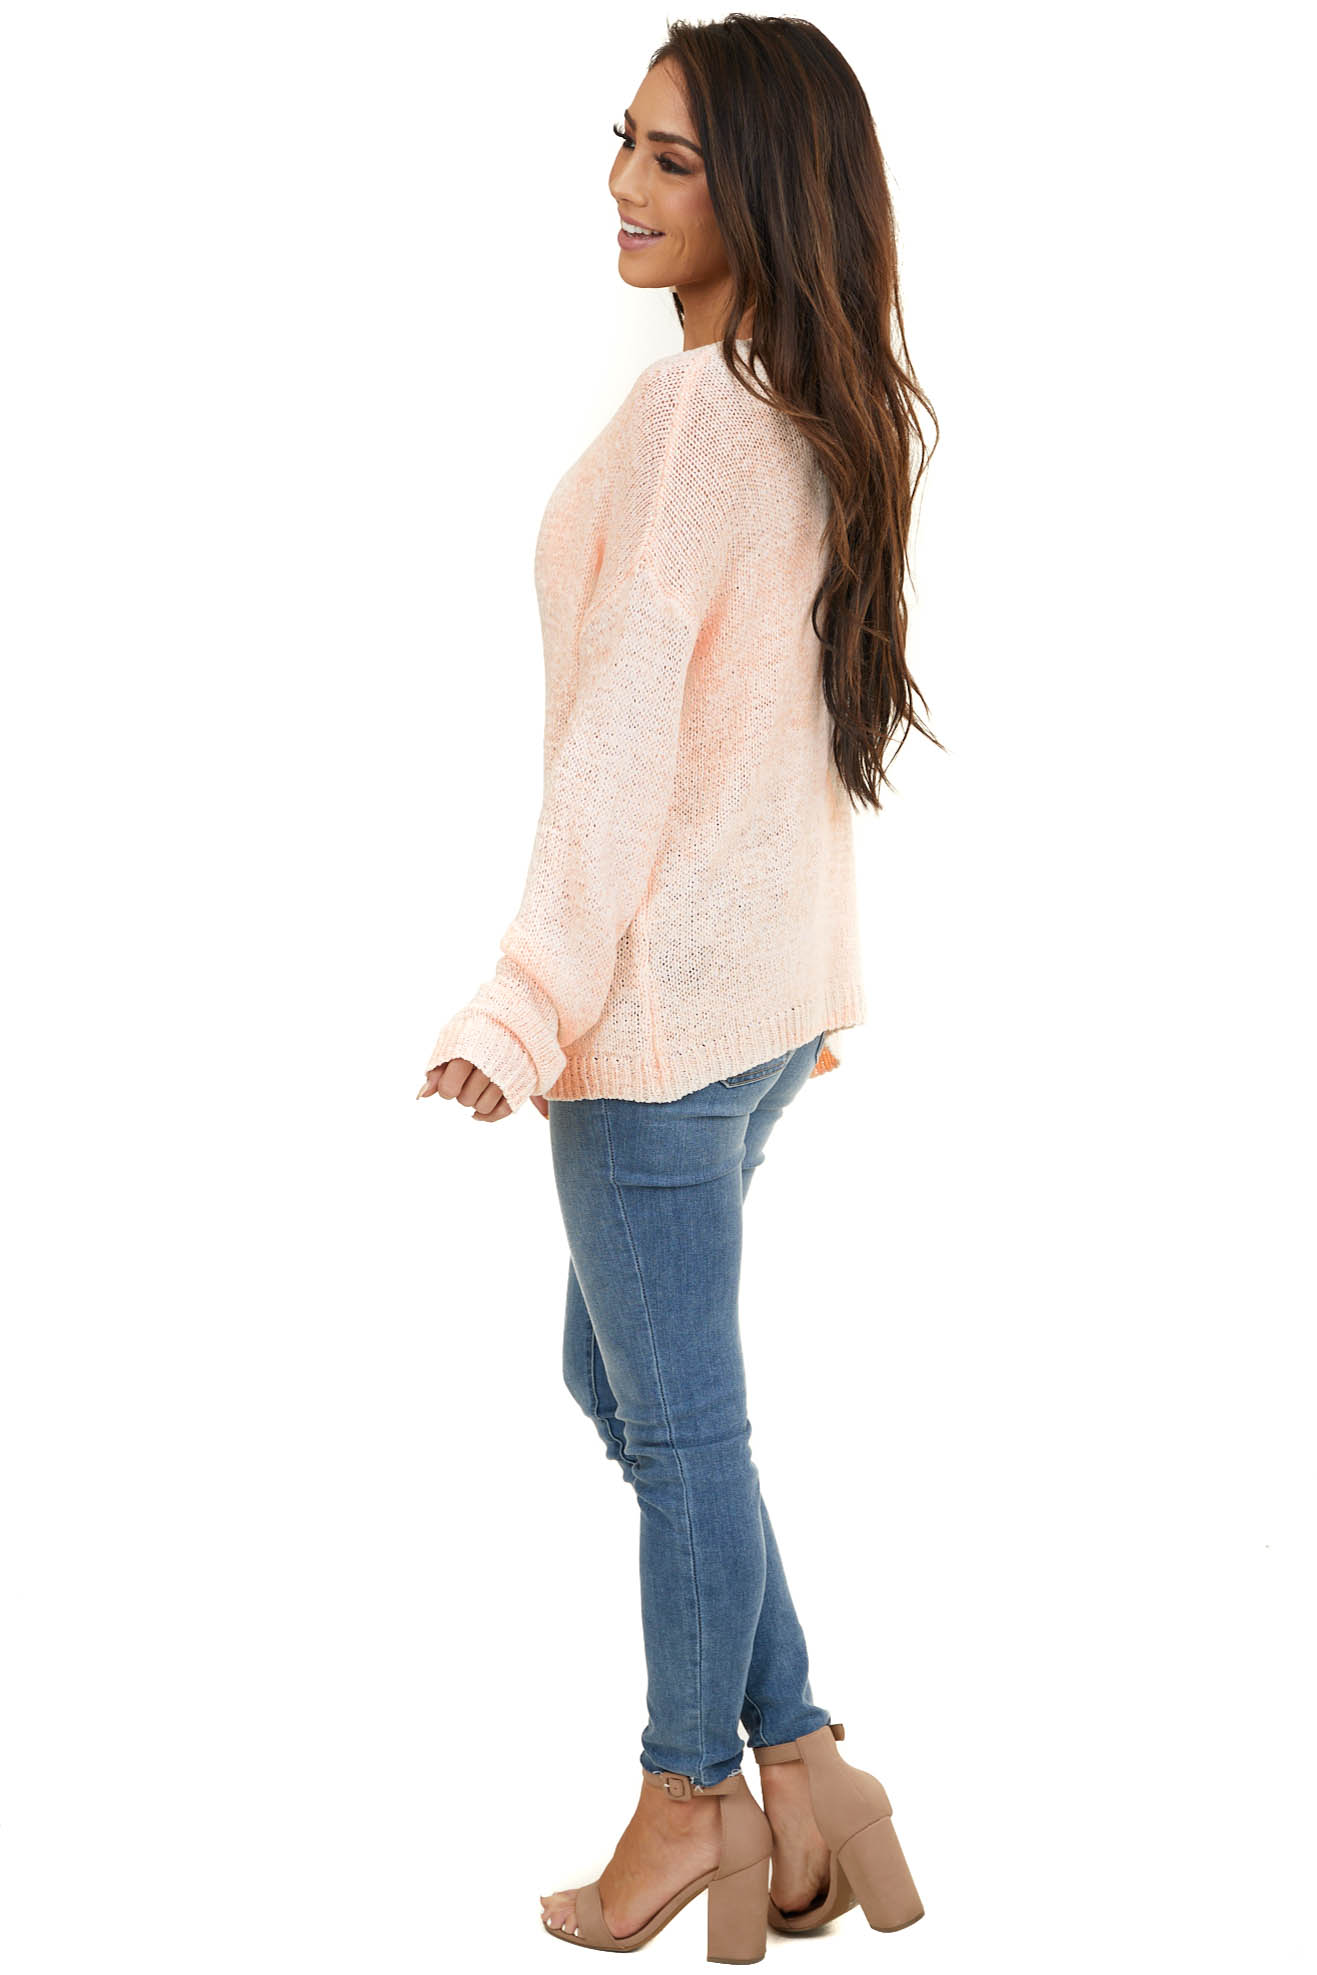 Bright Peach Loose Knit V Neck Sweater with Long Sleeves